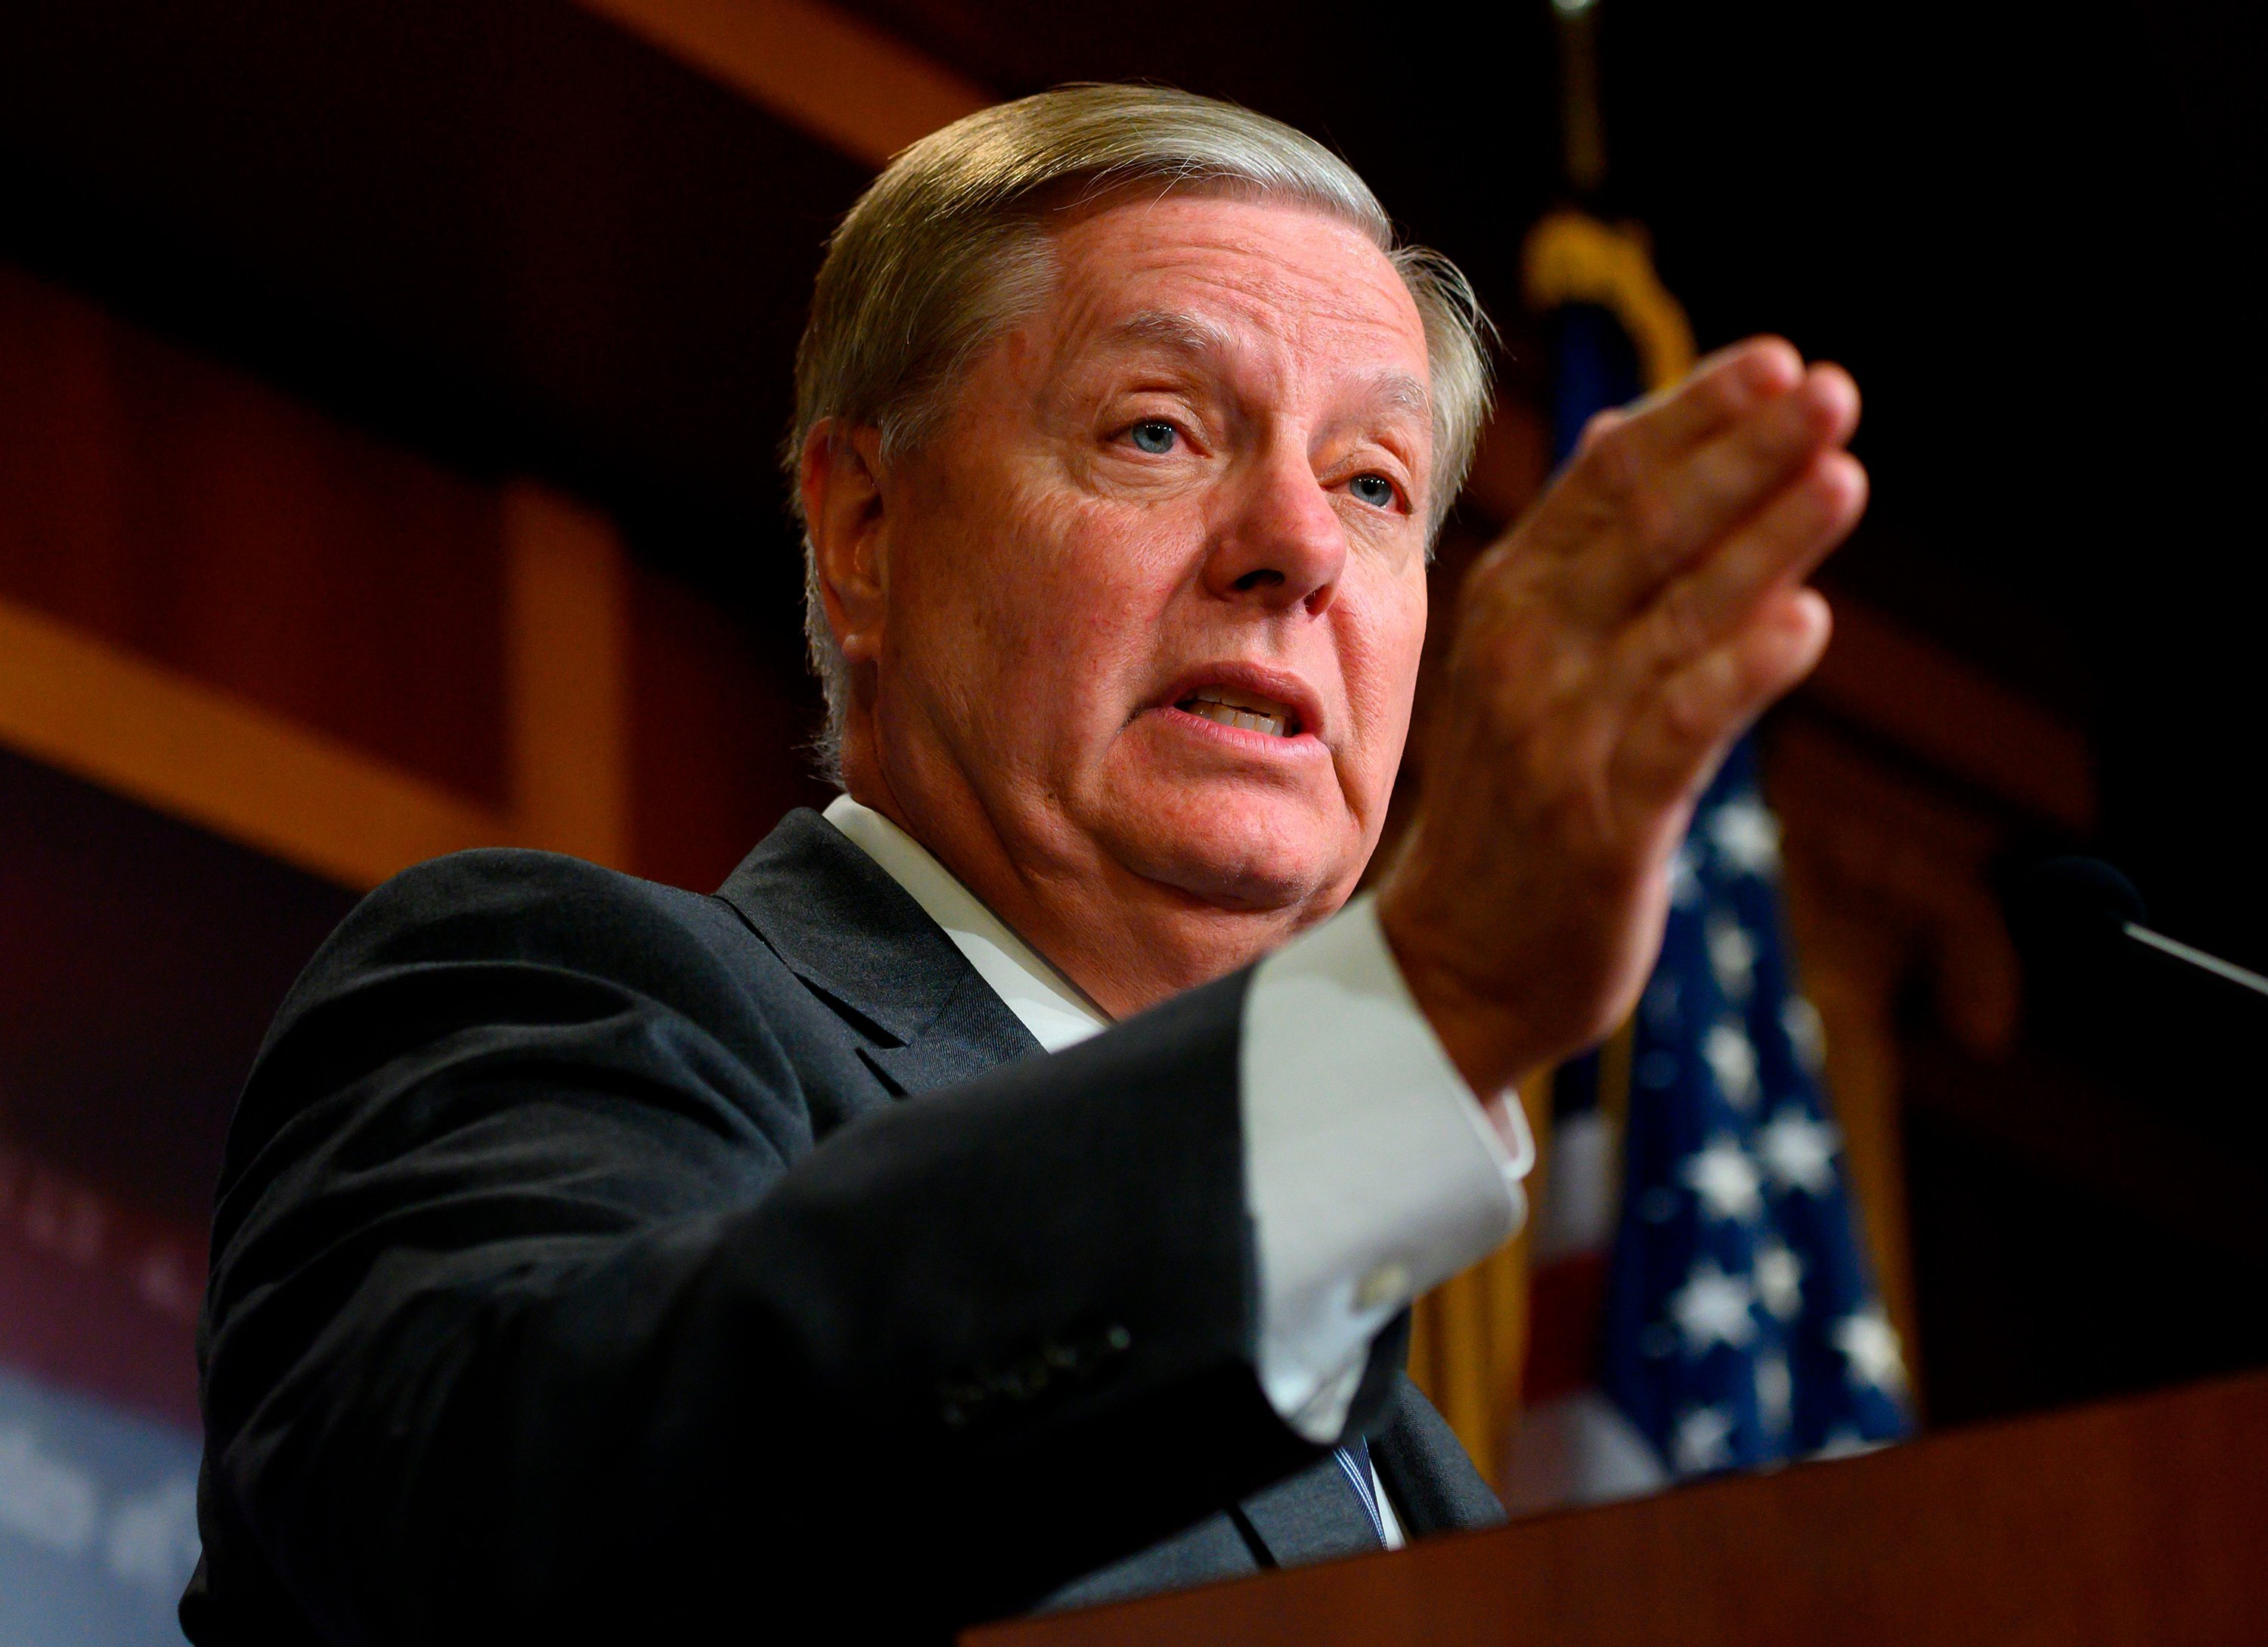 Graham asks State Department for documents related to the Bidens and Ukraine